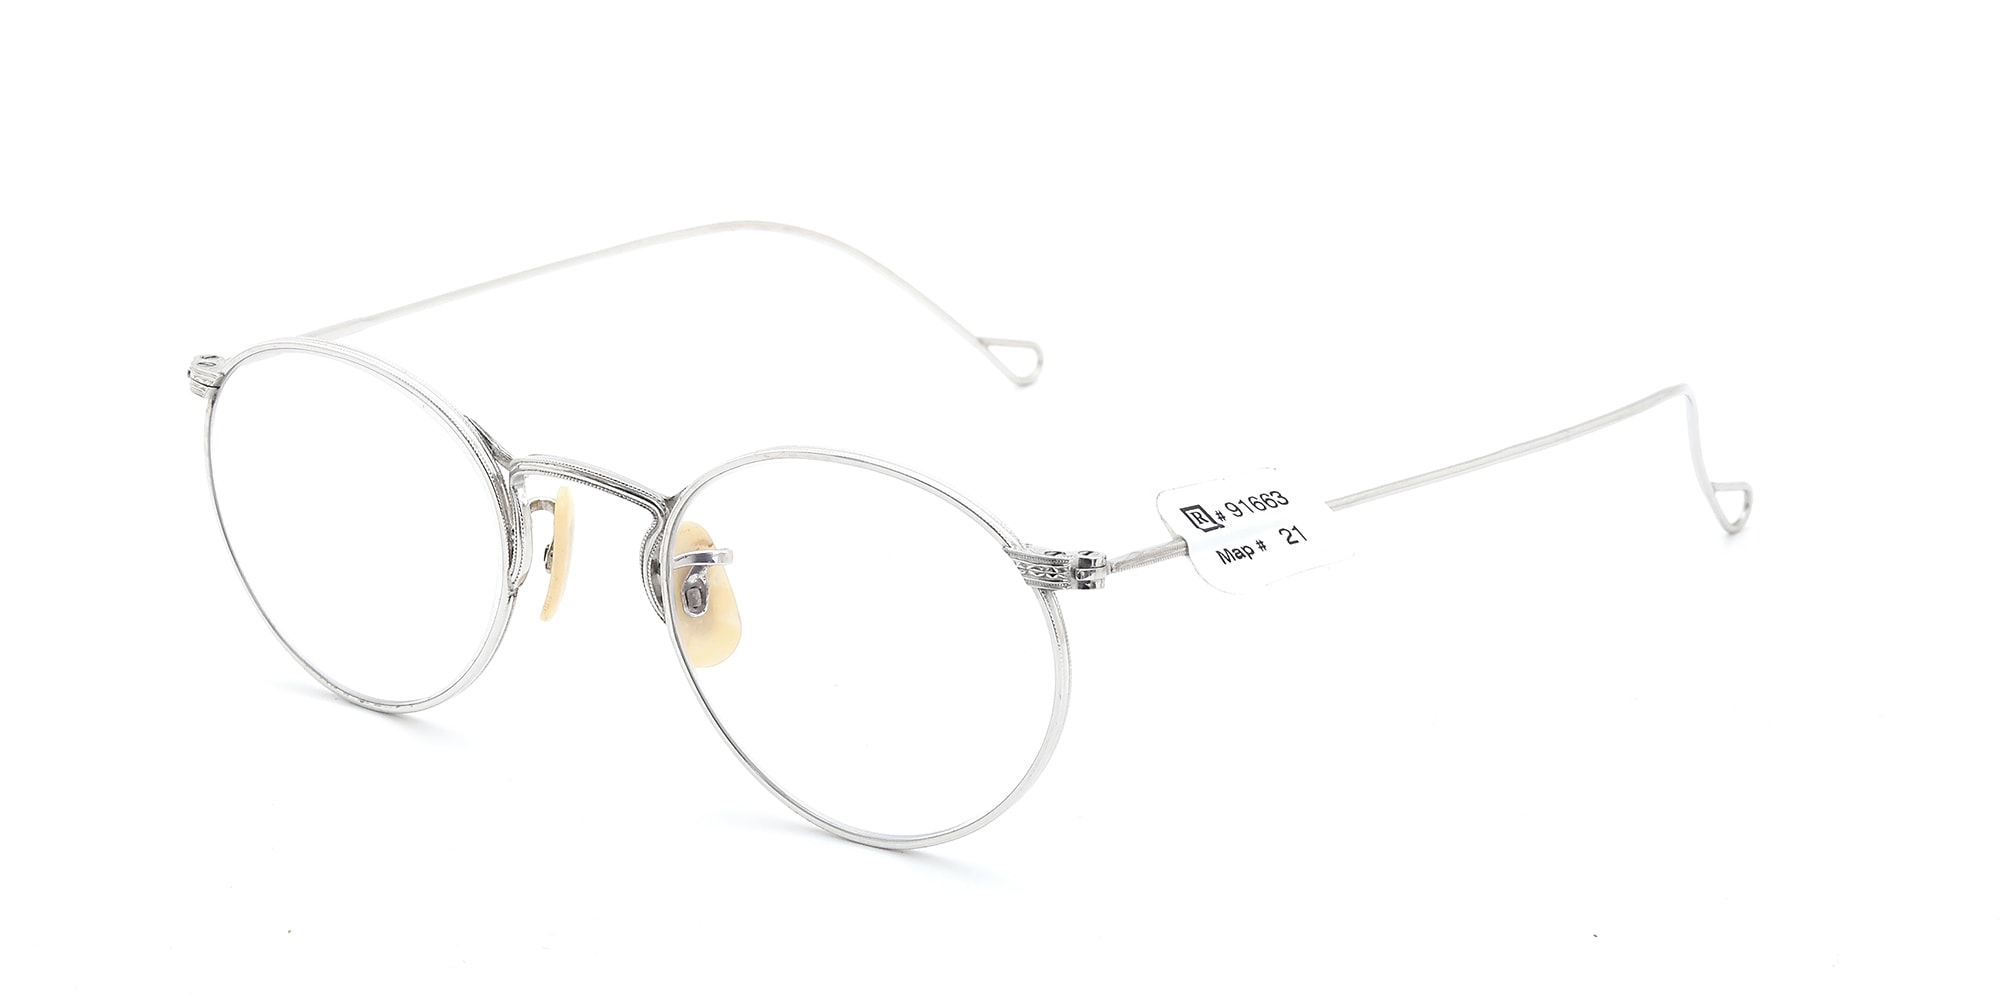 The Spectacle メガネ 1930s-40s American Optical Full-Frame Ful-Vue P-5 WG イメージ2